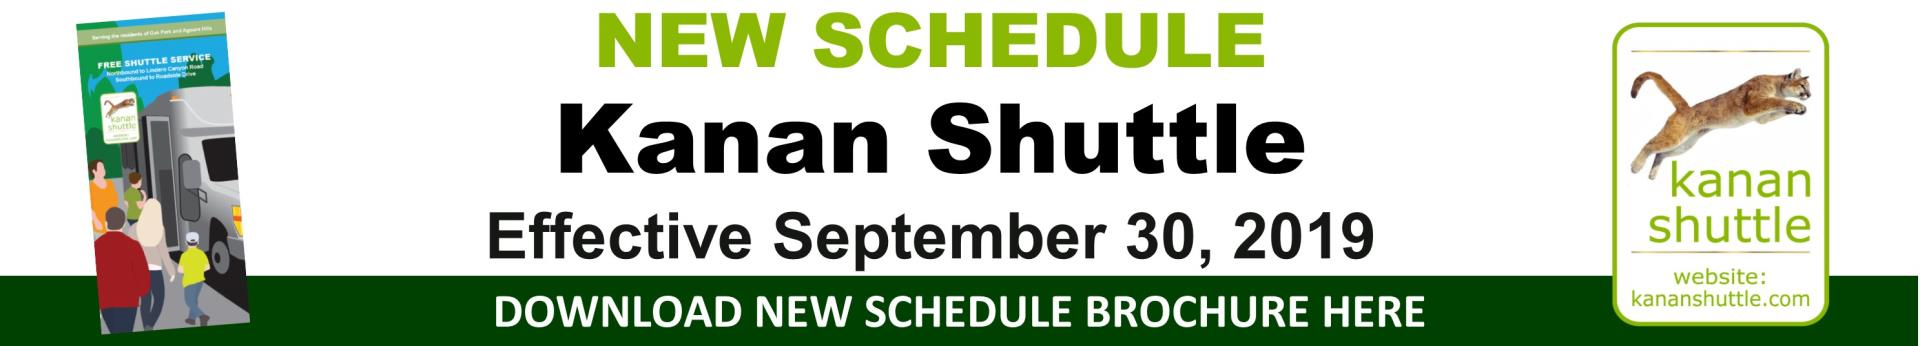 Kanan Shuttle New Brochure Link_Web Banner_2019